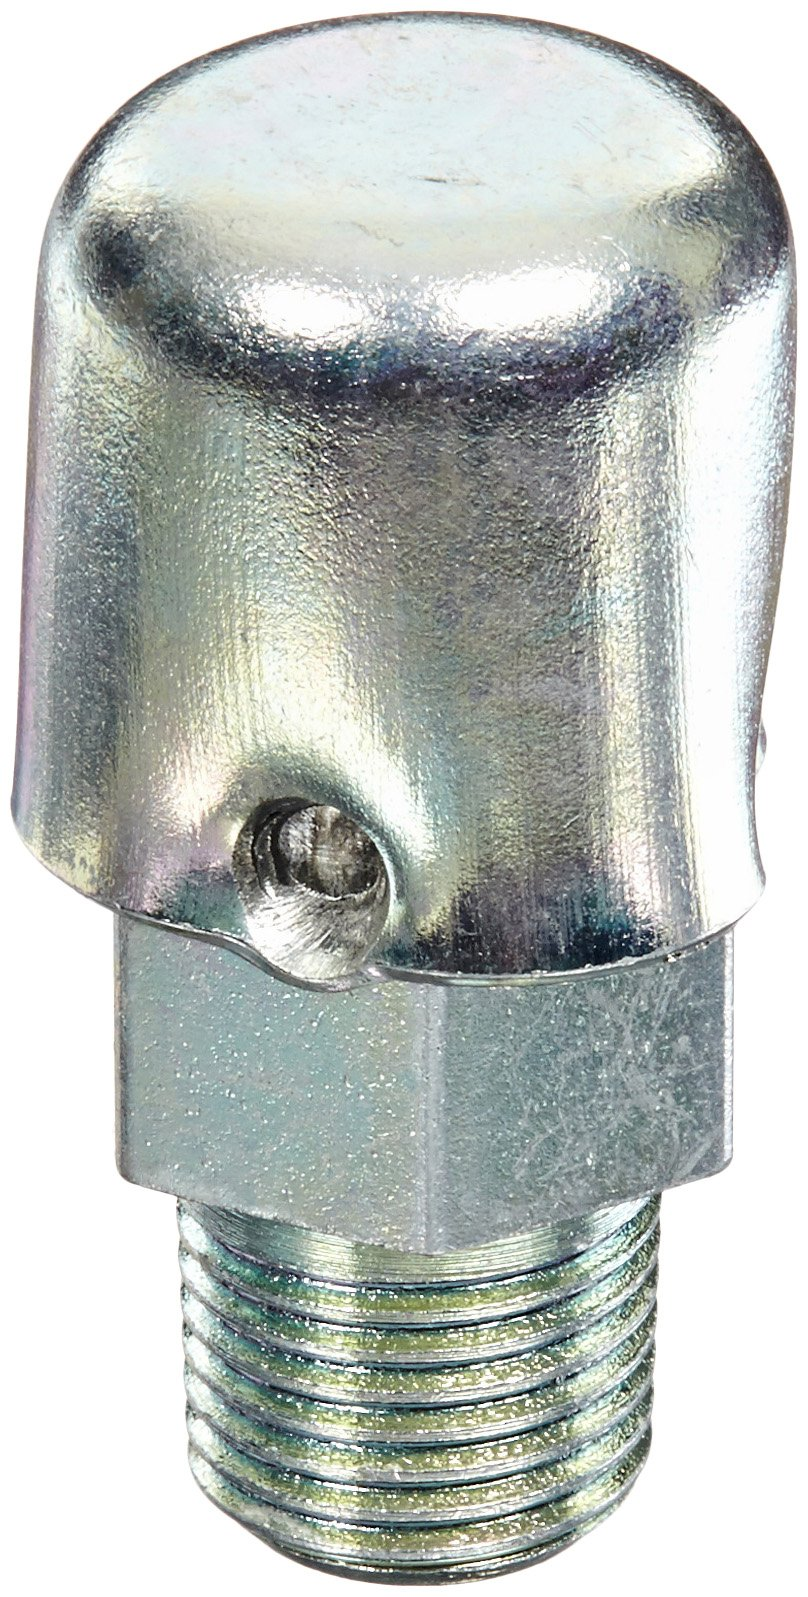 Gits 1631-012001 Style 1631 Breather Vent, 1/8-27 NPT Open Breather